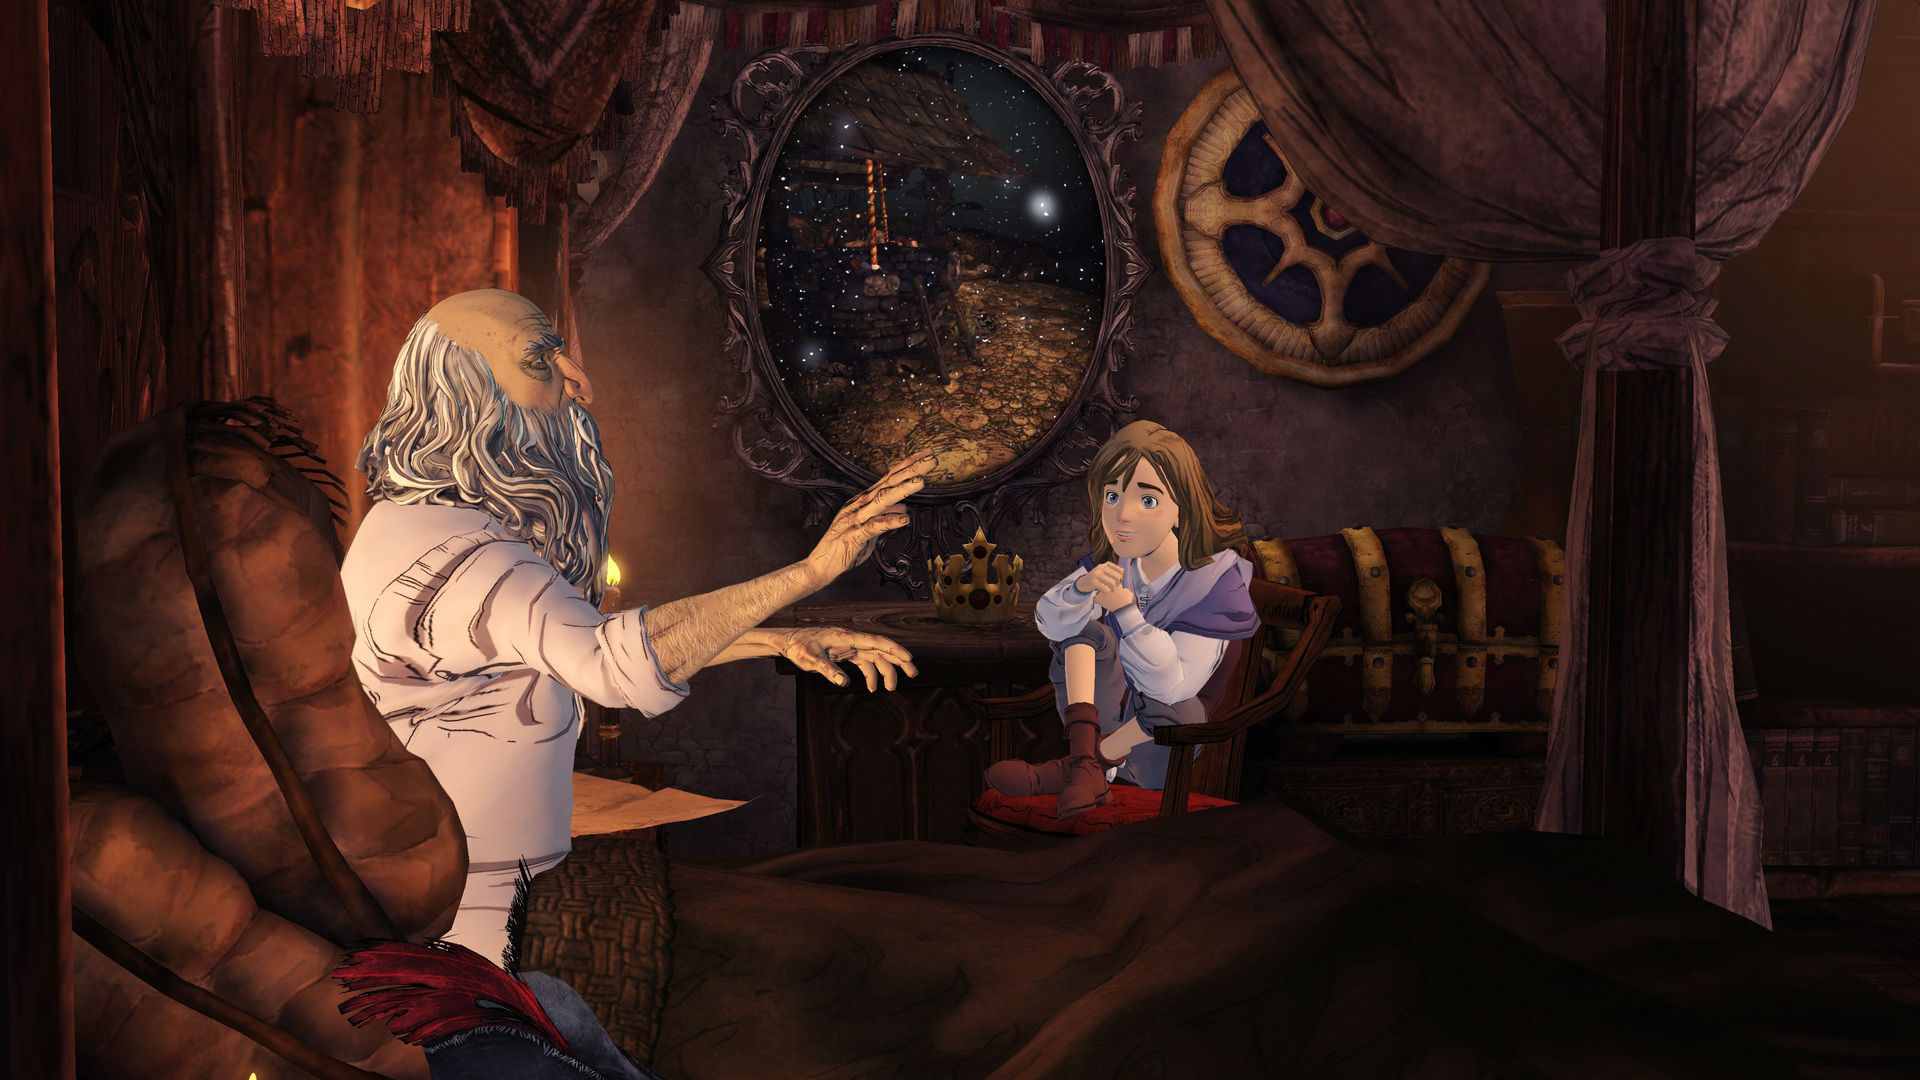 http://cdn.entertainmentfuse.com/media/2015/08/kings-quest-old-man.jpg